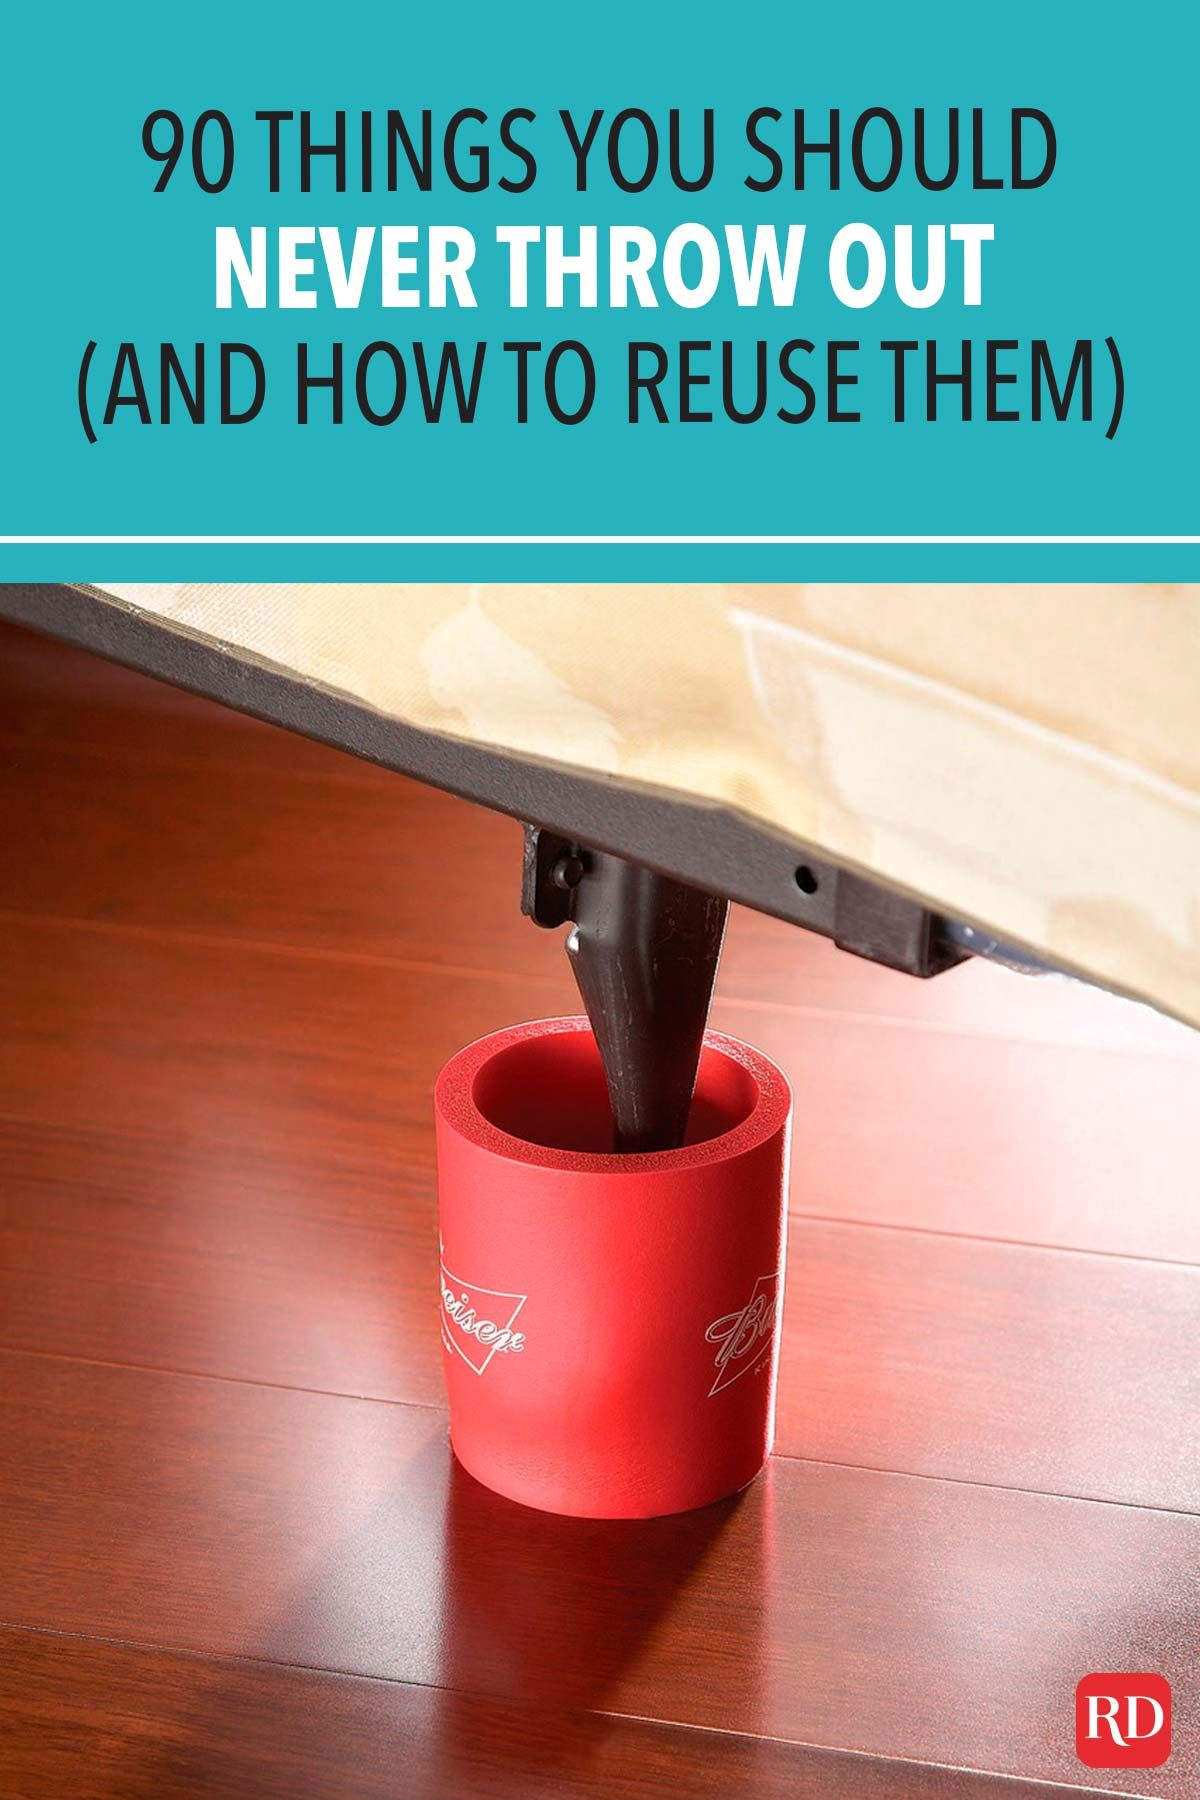 90 Things You Should Never Throw Out And How To Reuse Them In 2020 Useful Life Hacks Everyday Hacks Diy Life Hacks